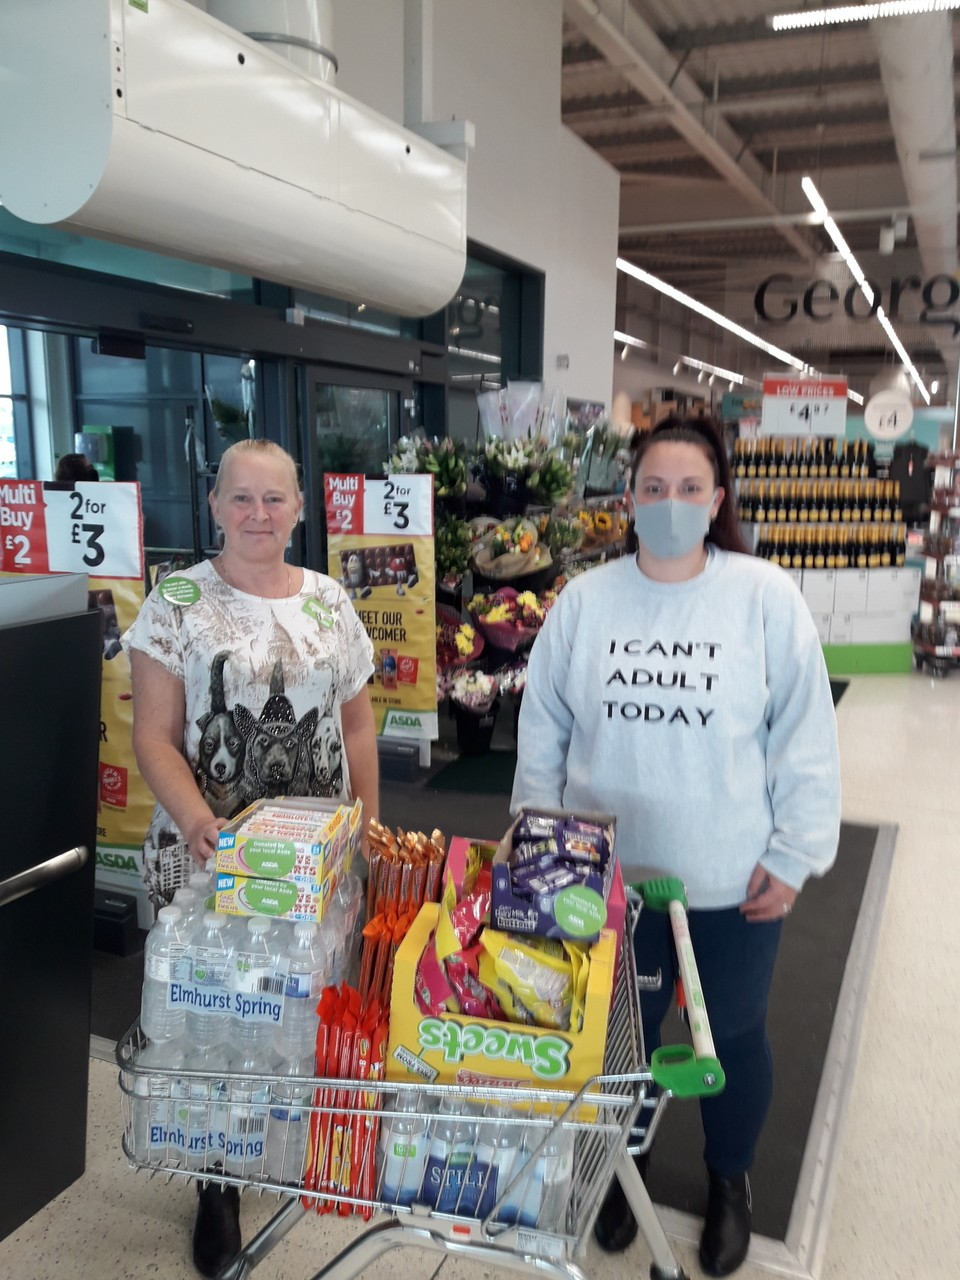 Treasure hunt donation | Asda Swinton